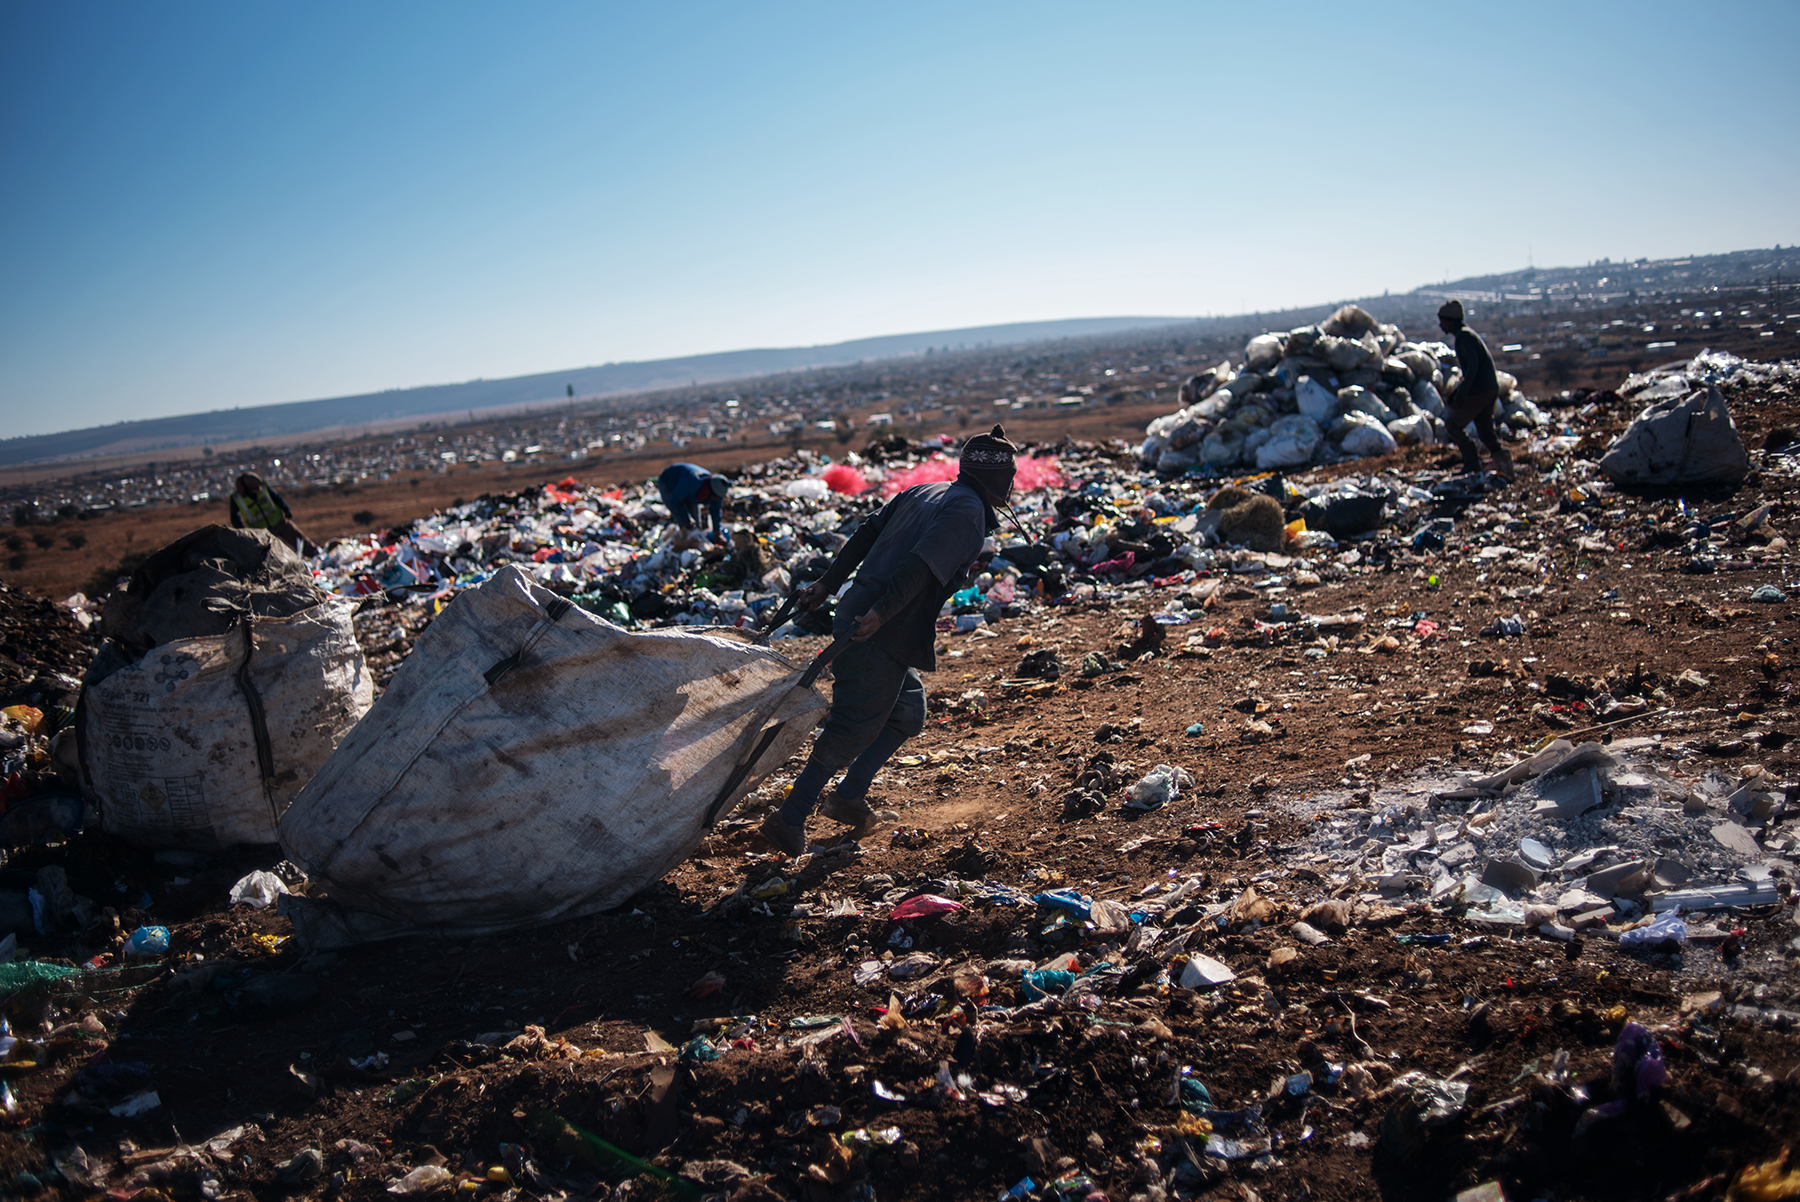 An informal waste picker drags a sack filled up of waste dumped by a garbage truck at the Palm Springs landfill in the outskirt of Johannesburg, South Africa, on June 28, 2019.